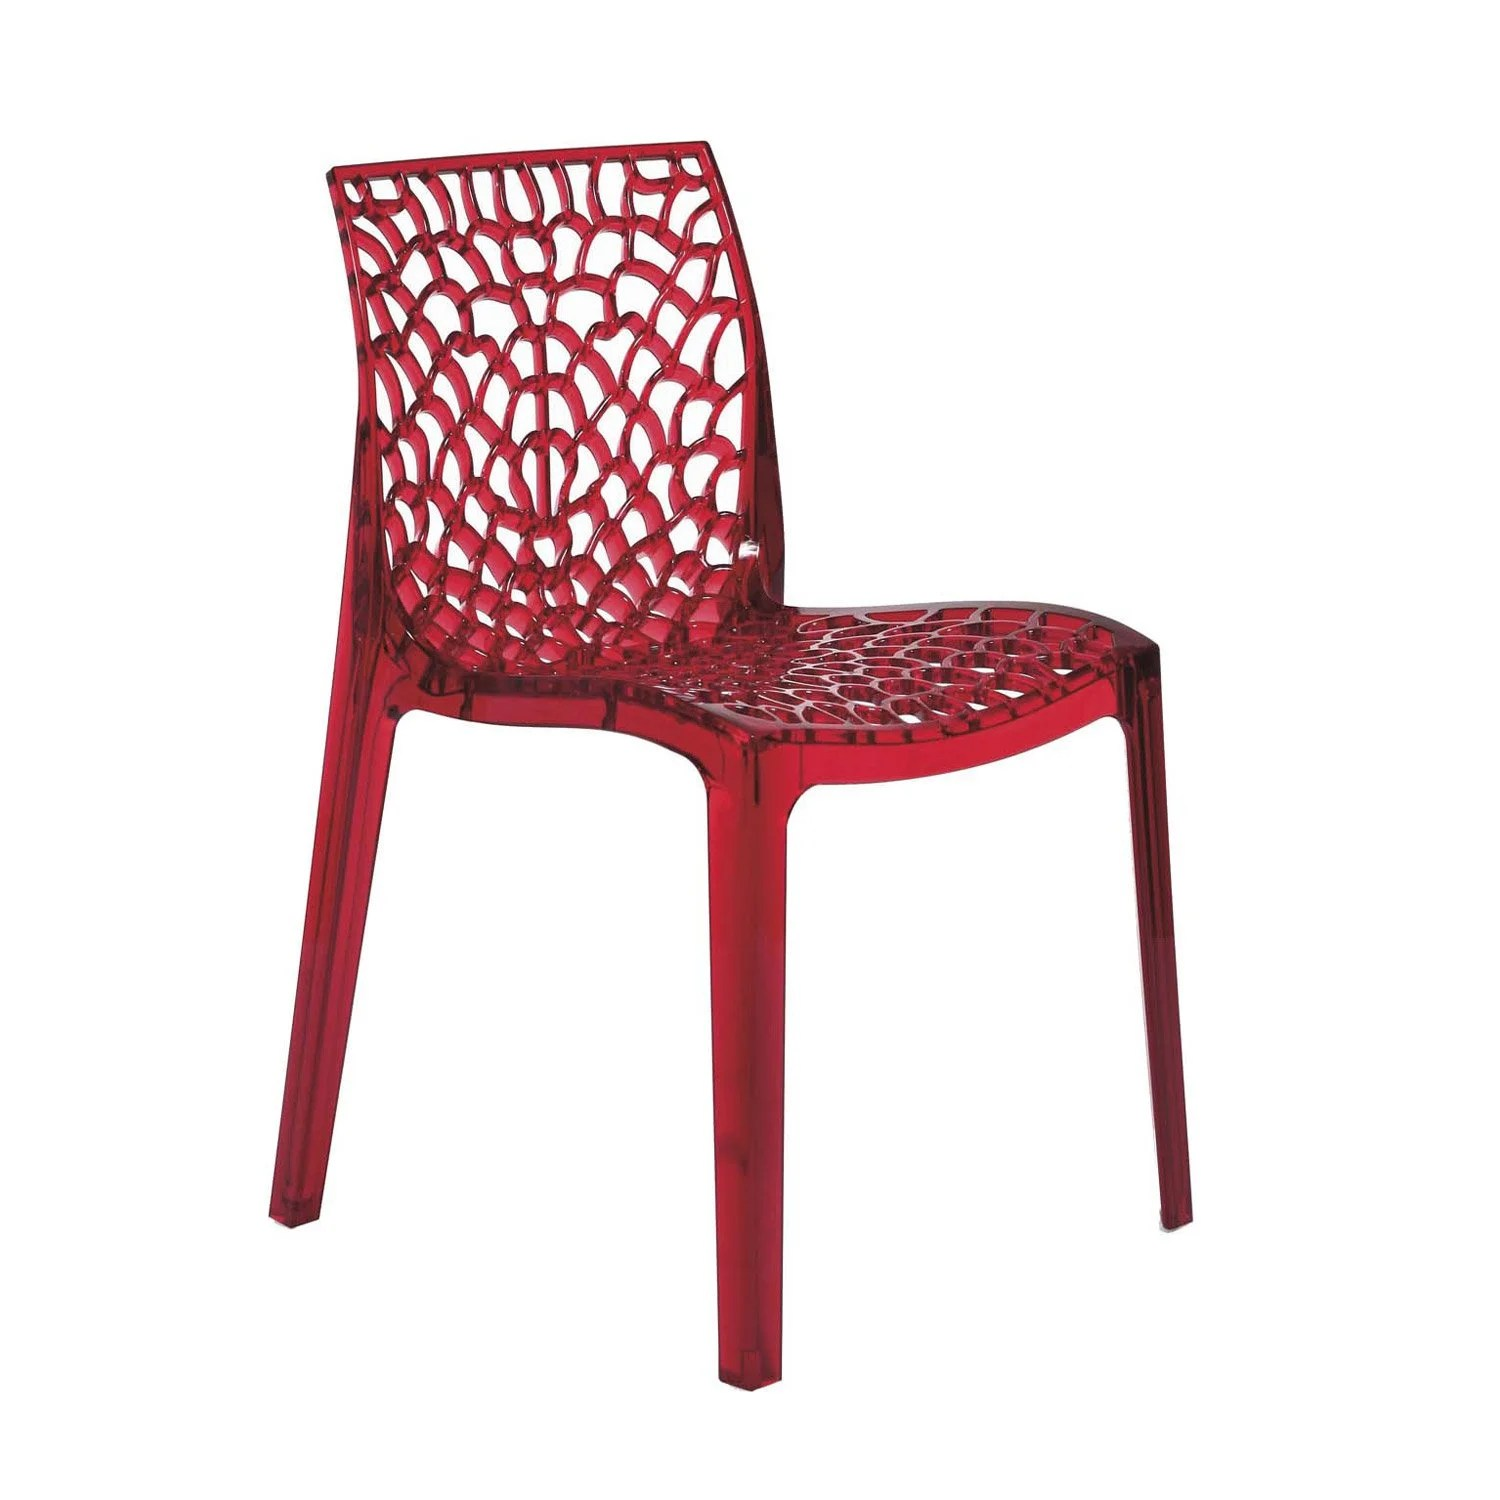 Chaises En Polycarbonate Chaise De Jardin En Polycarbonate Grafik Rouge Transparent